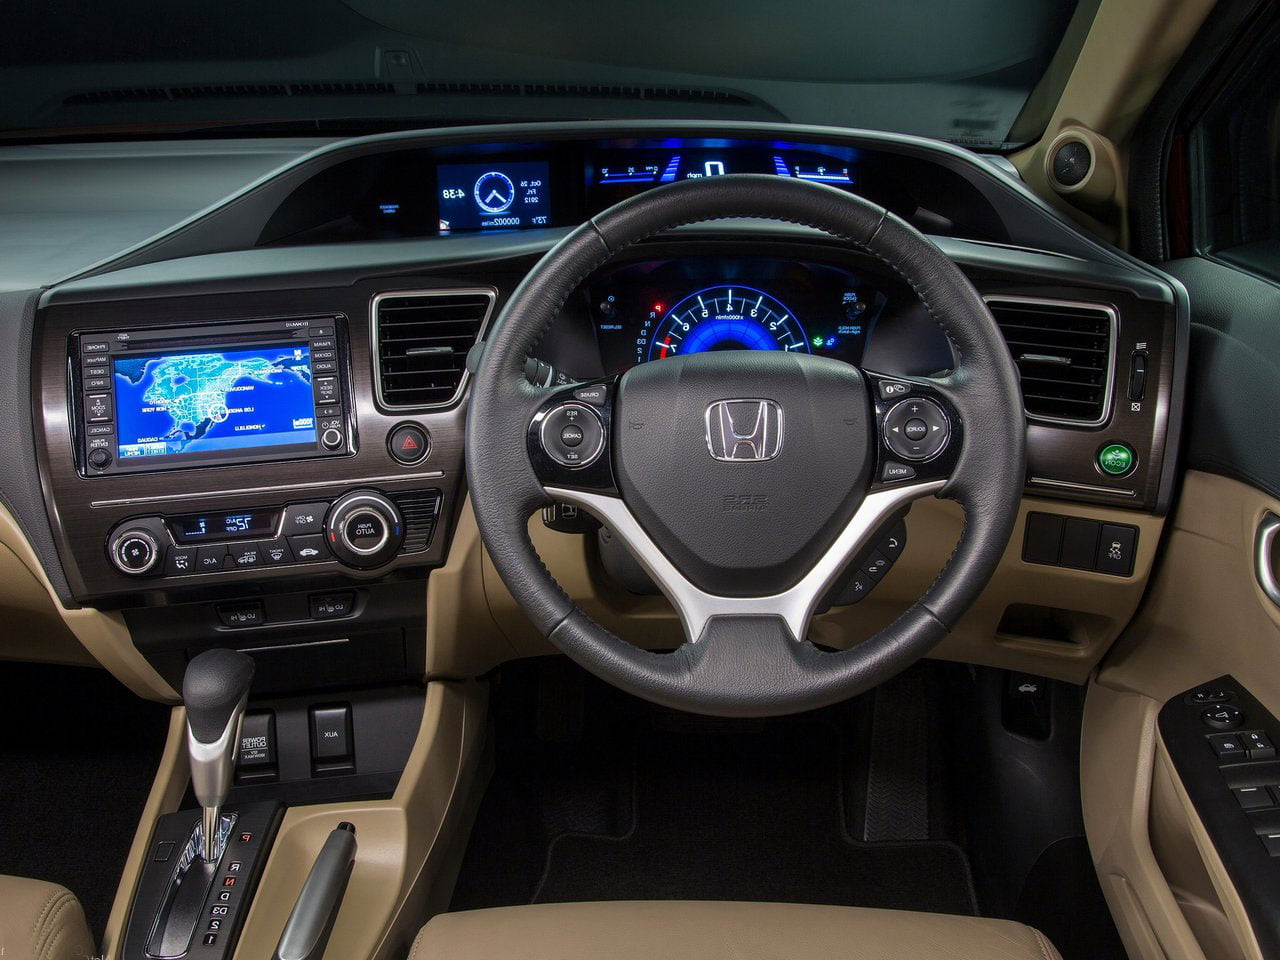 2014 honda civic india launch diesel model price details. Black Bedroom Furniture Sets. Home Design Ideas